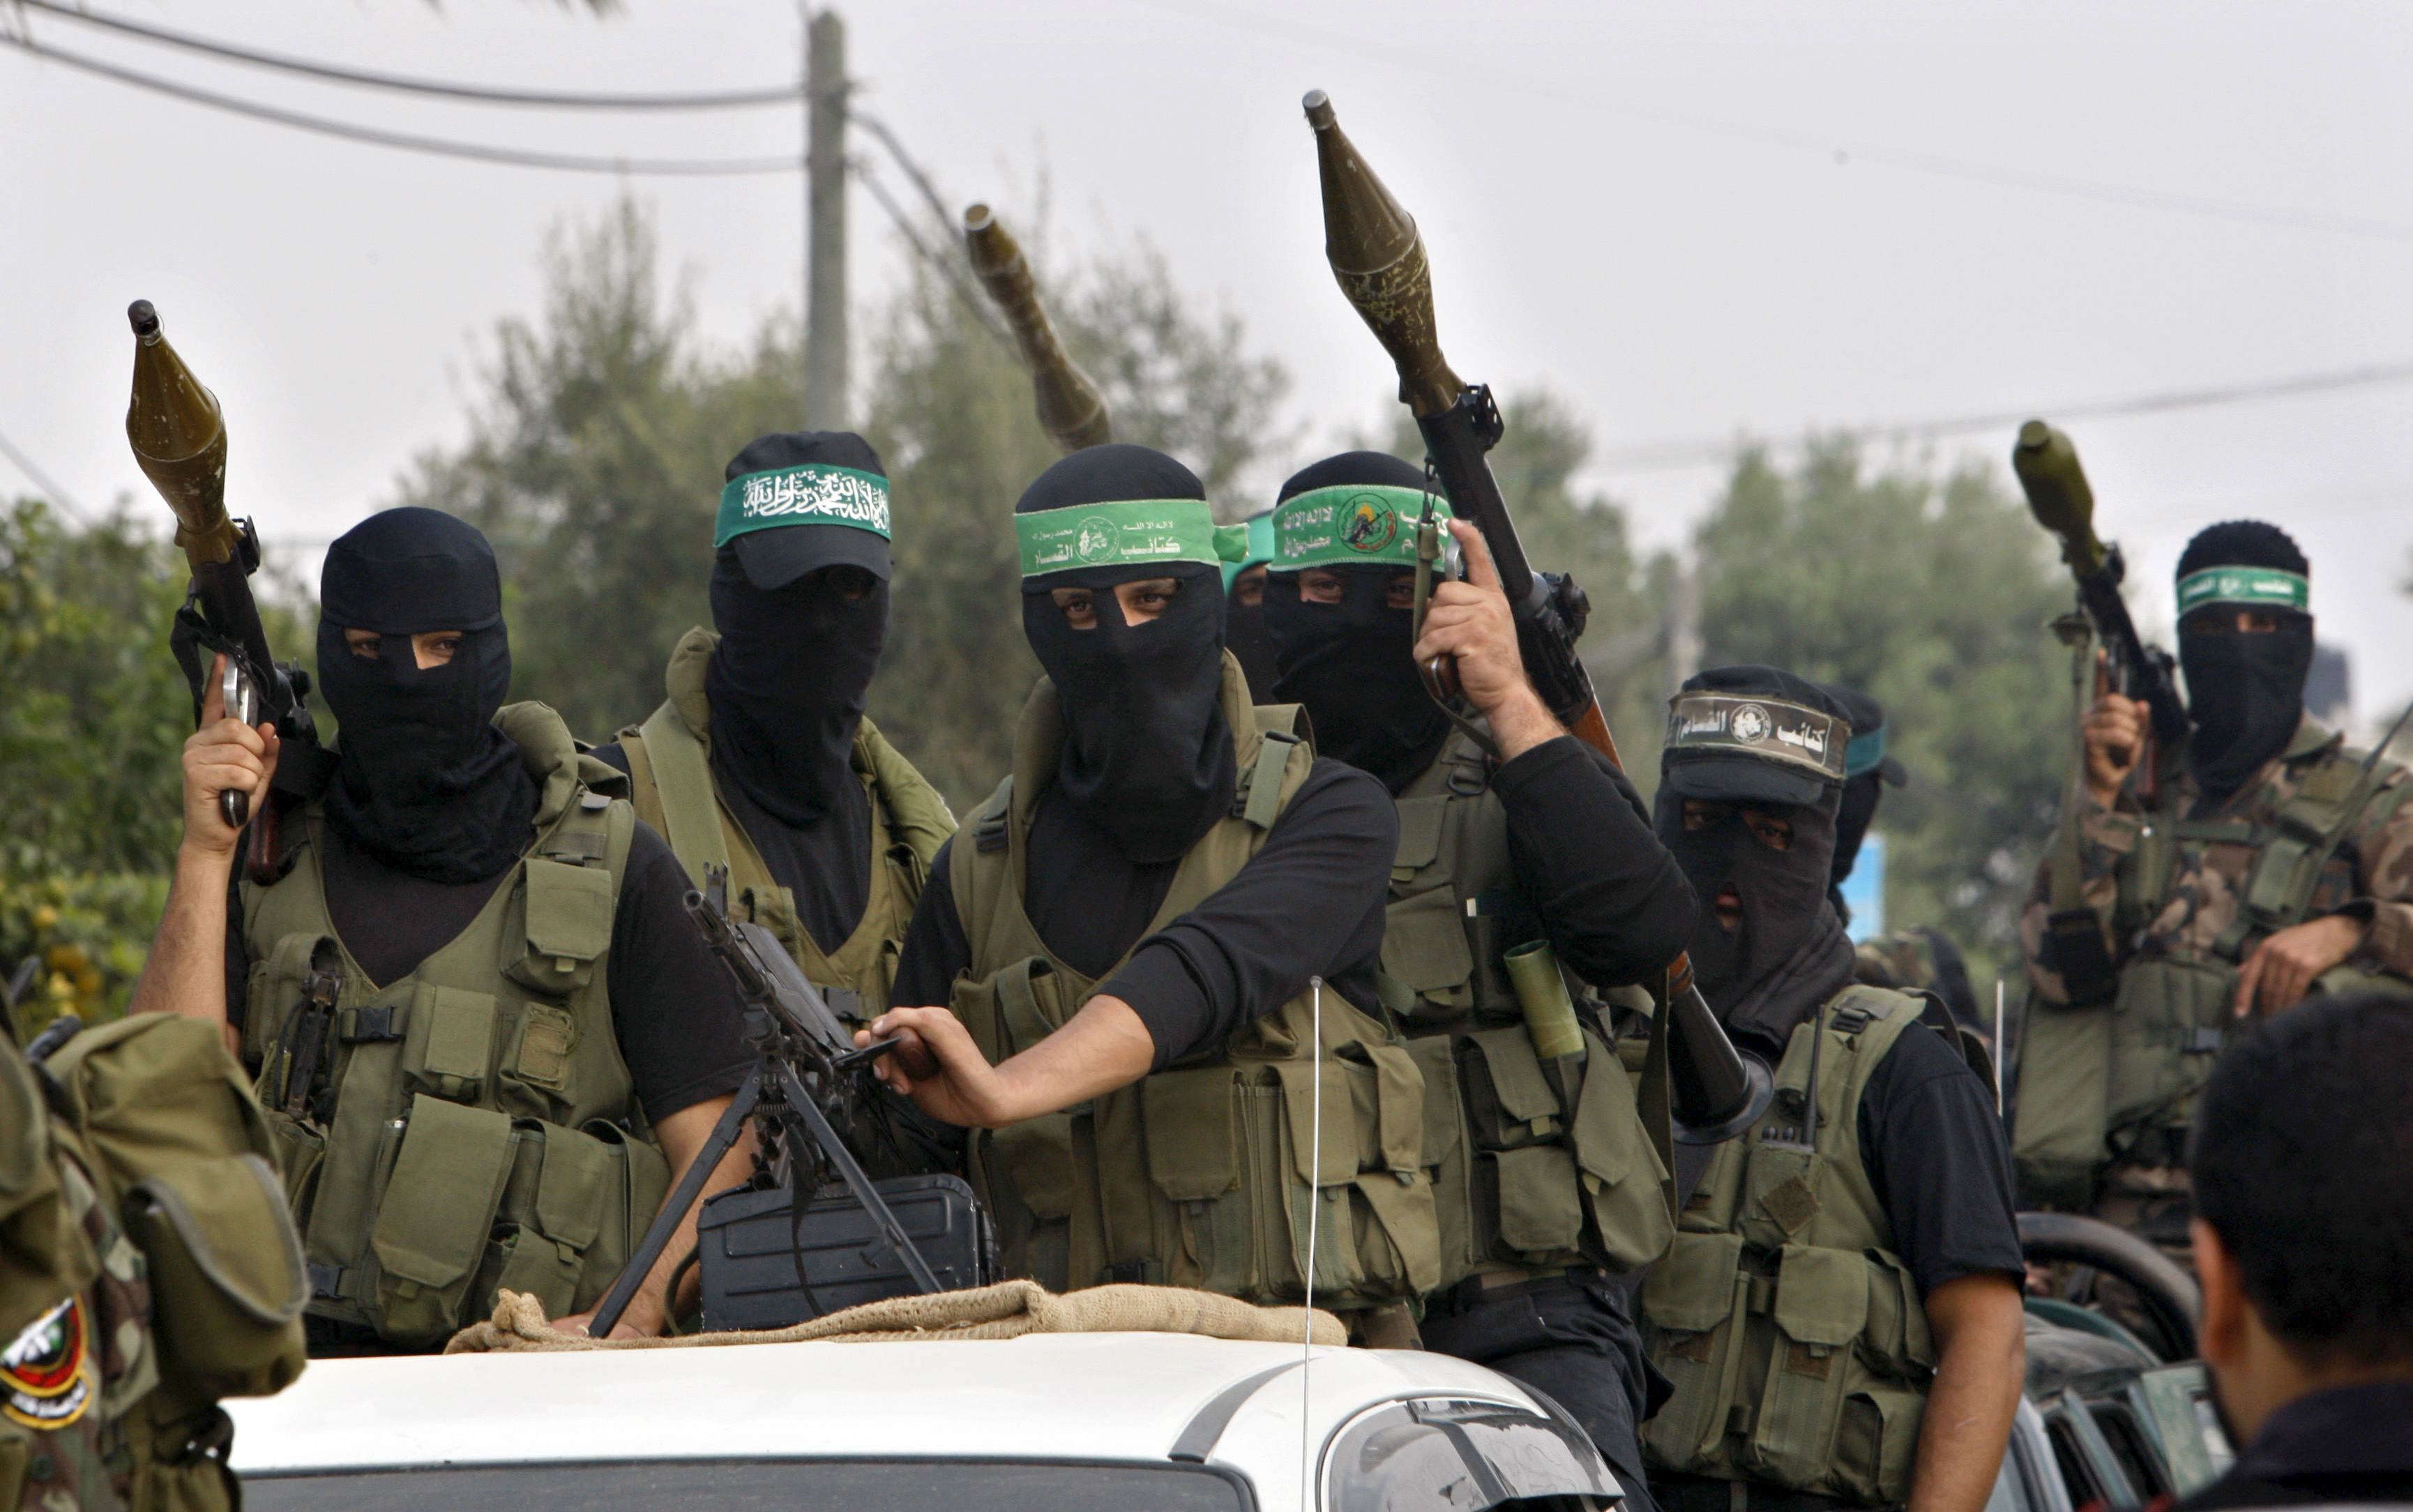 Palestinian militants of the Izzedine Al-Qassam Brigades, the armed wing of Hamas, attend funerals of five Hamas militants in Mugharka village, central Gaza Strip, Thursday, Nov. 22, 2012. Five Hamas militants were killed in an Israeli air strike yesterday, Palestinian health officials said. (AP Photo/Adel Hana)